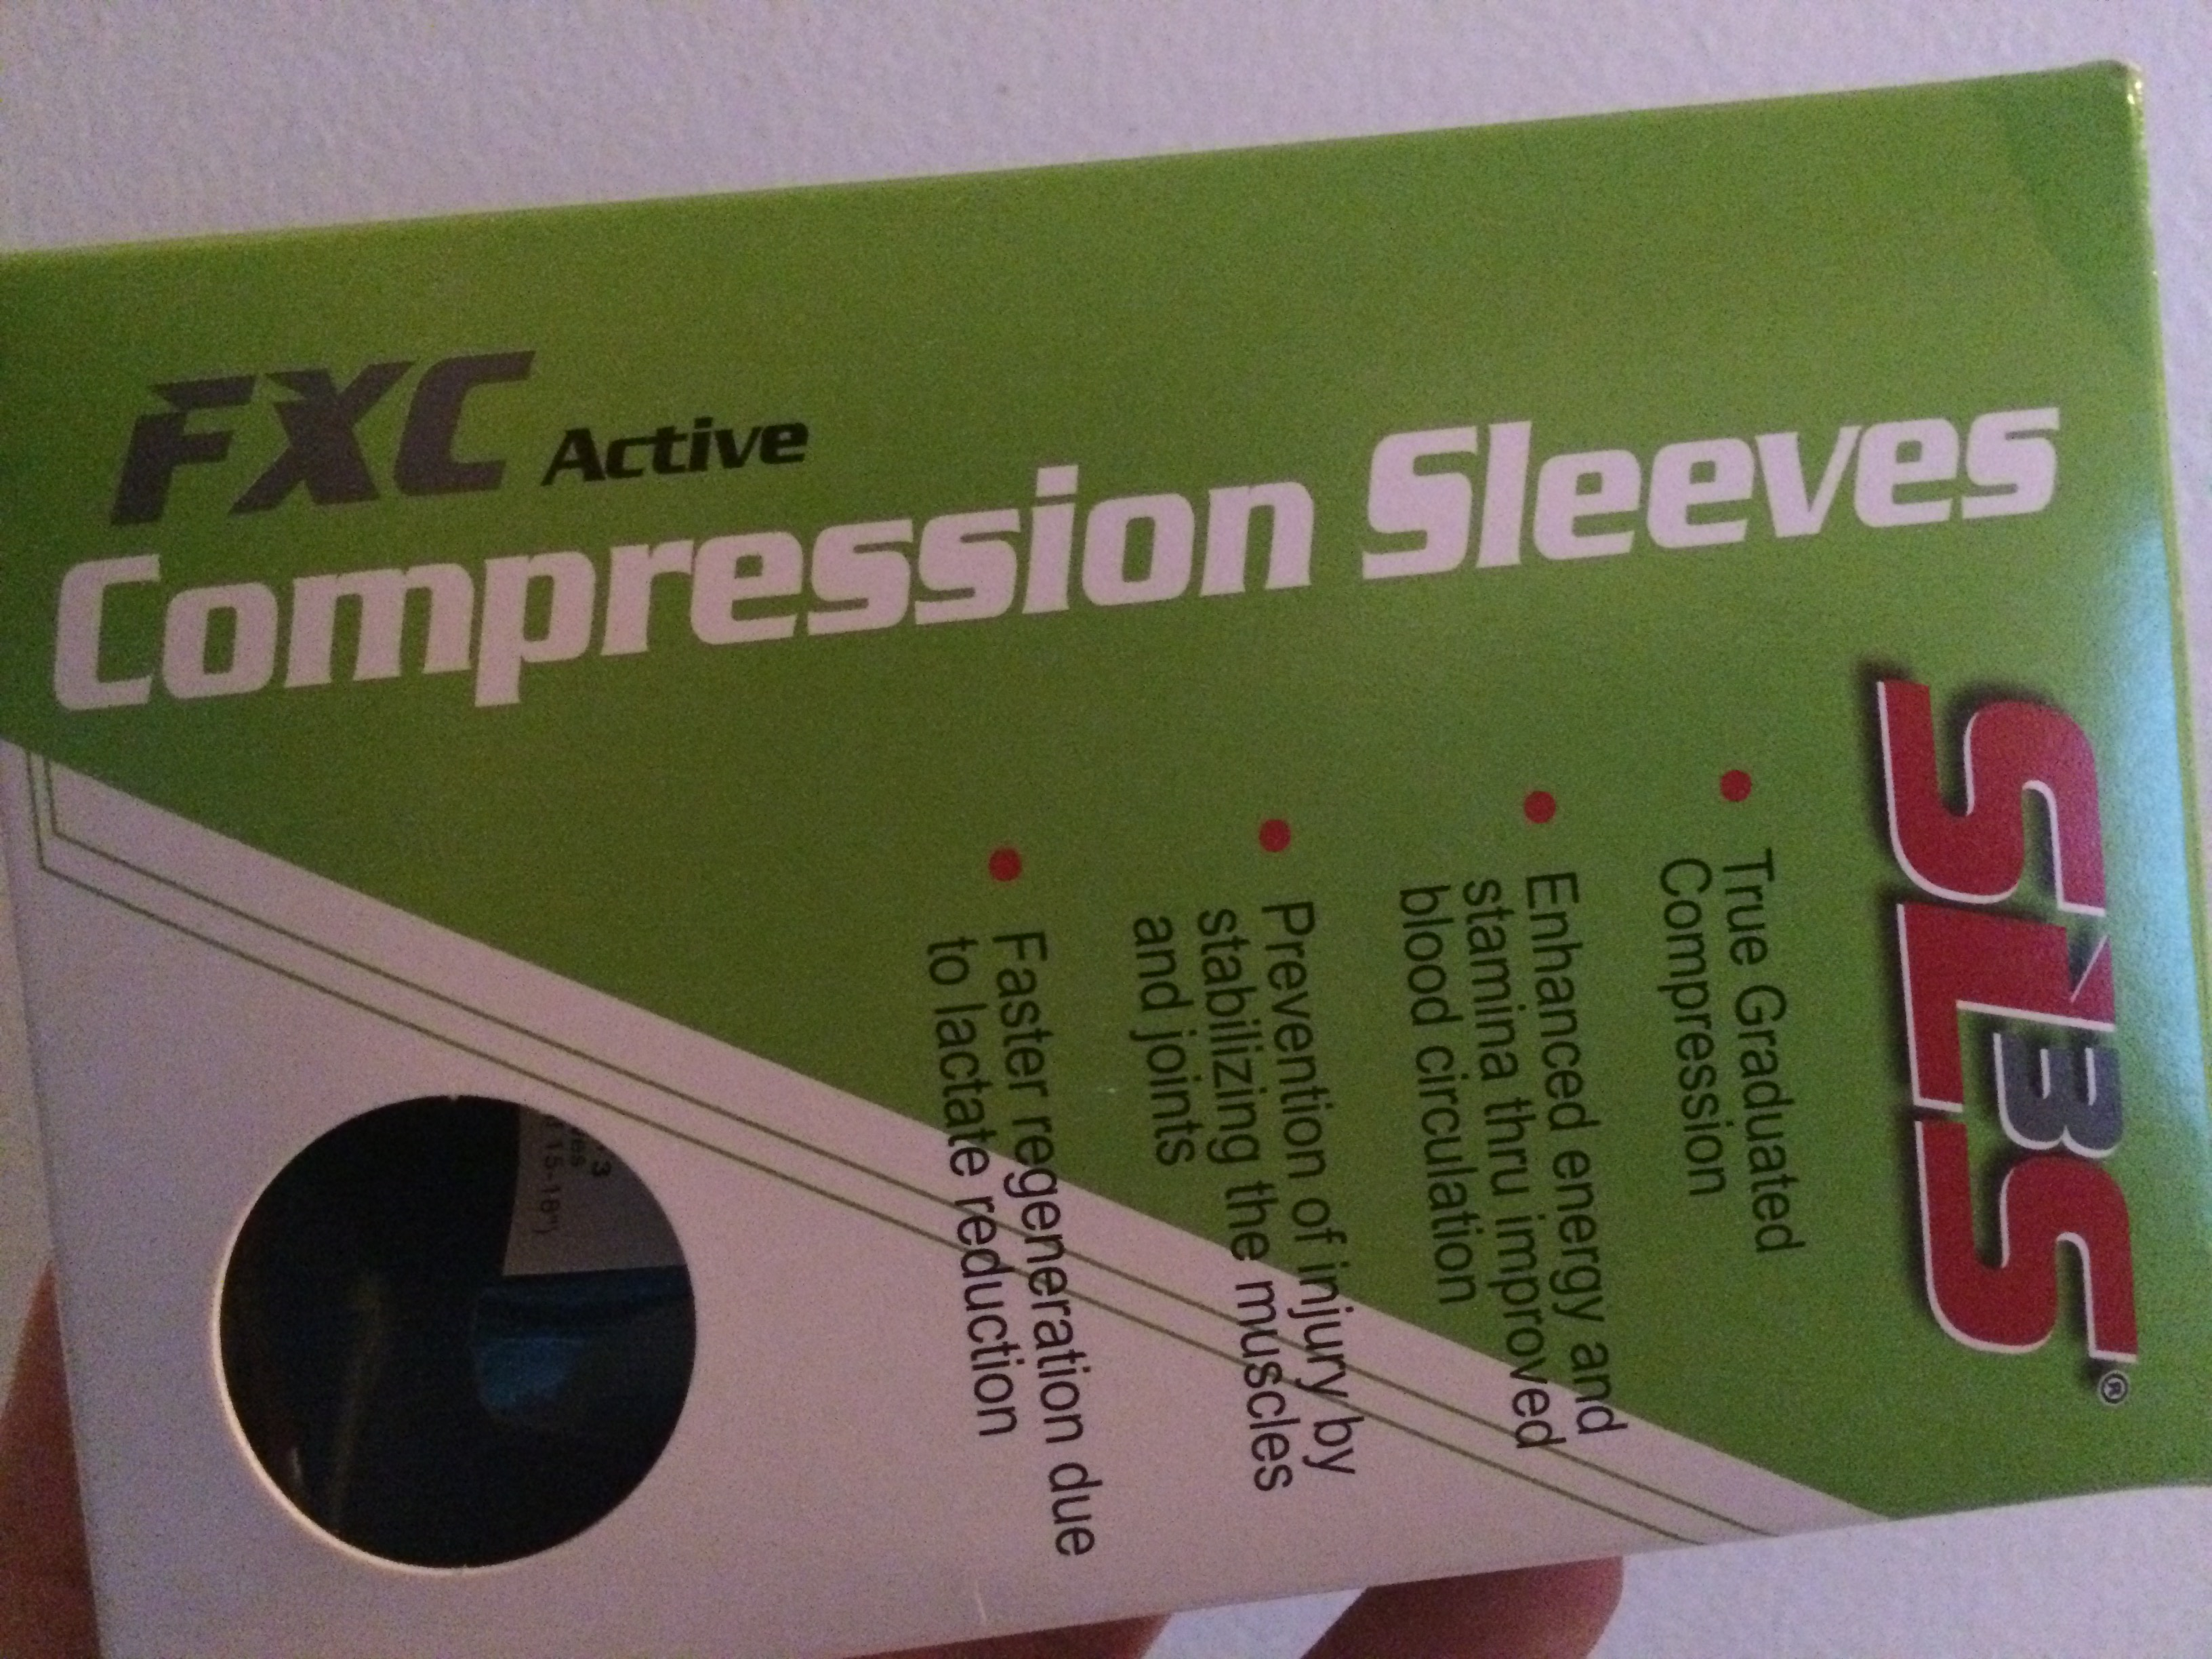 FXC Active Compression Sleeves (by SLS3)